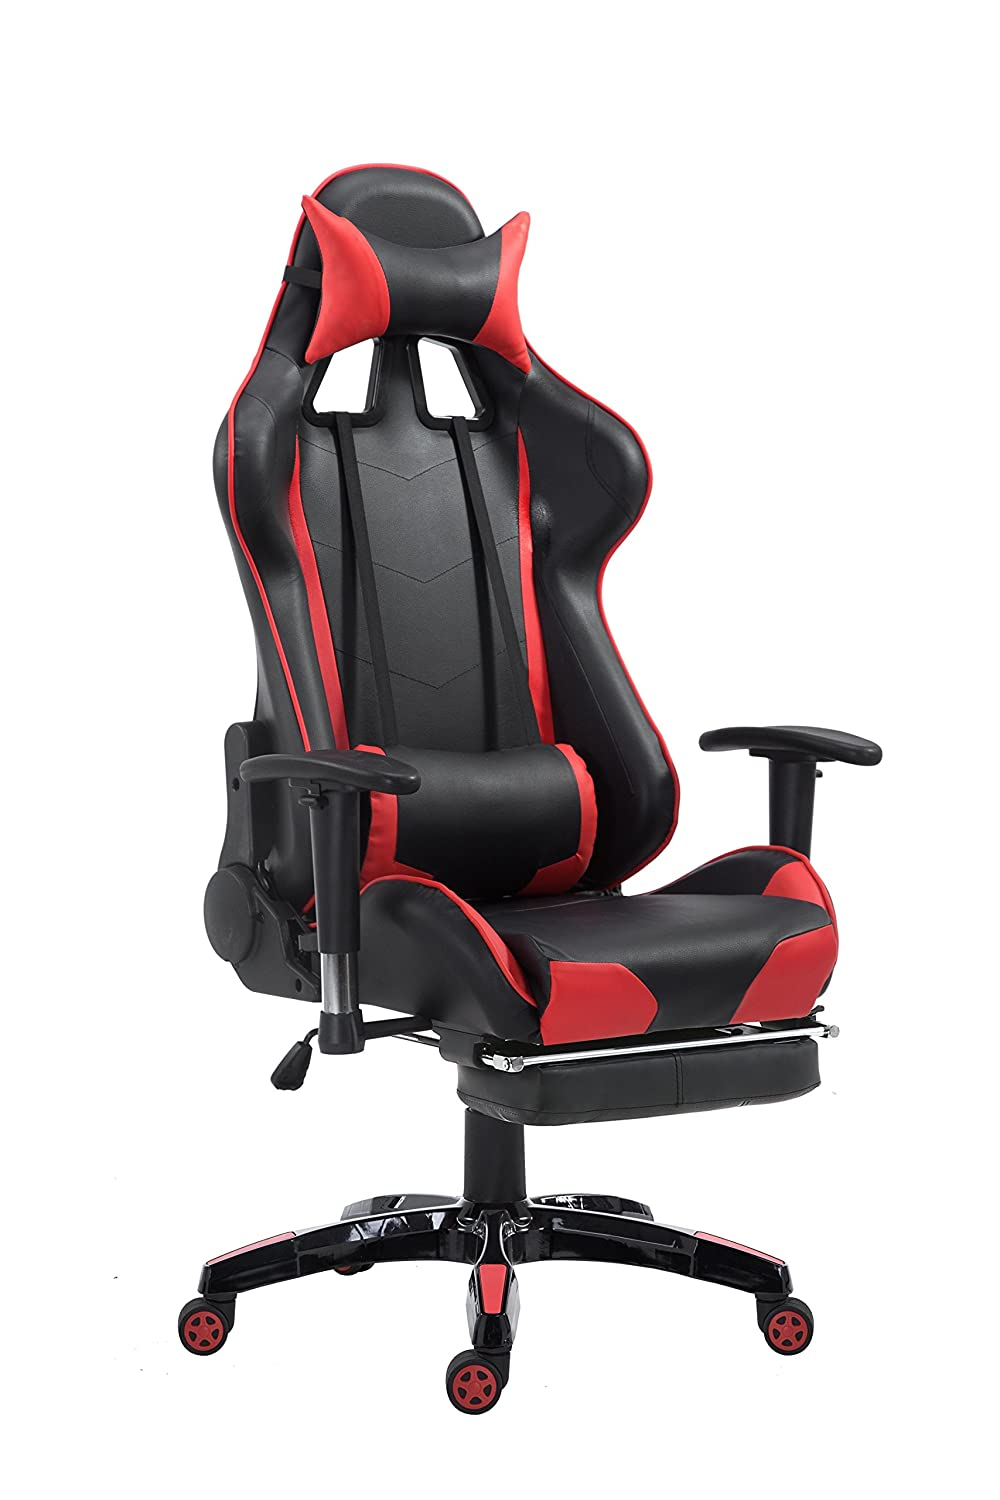 Yakoe Recliner Office Computer Sports Gaming Racing High Back Footrest Headrest Swivel Chair, Faux Leather, Black/Red, 69x70x130 Cm by Amazon